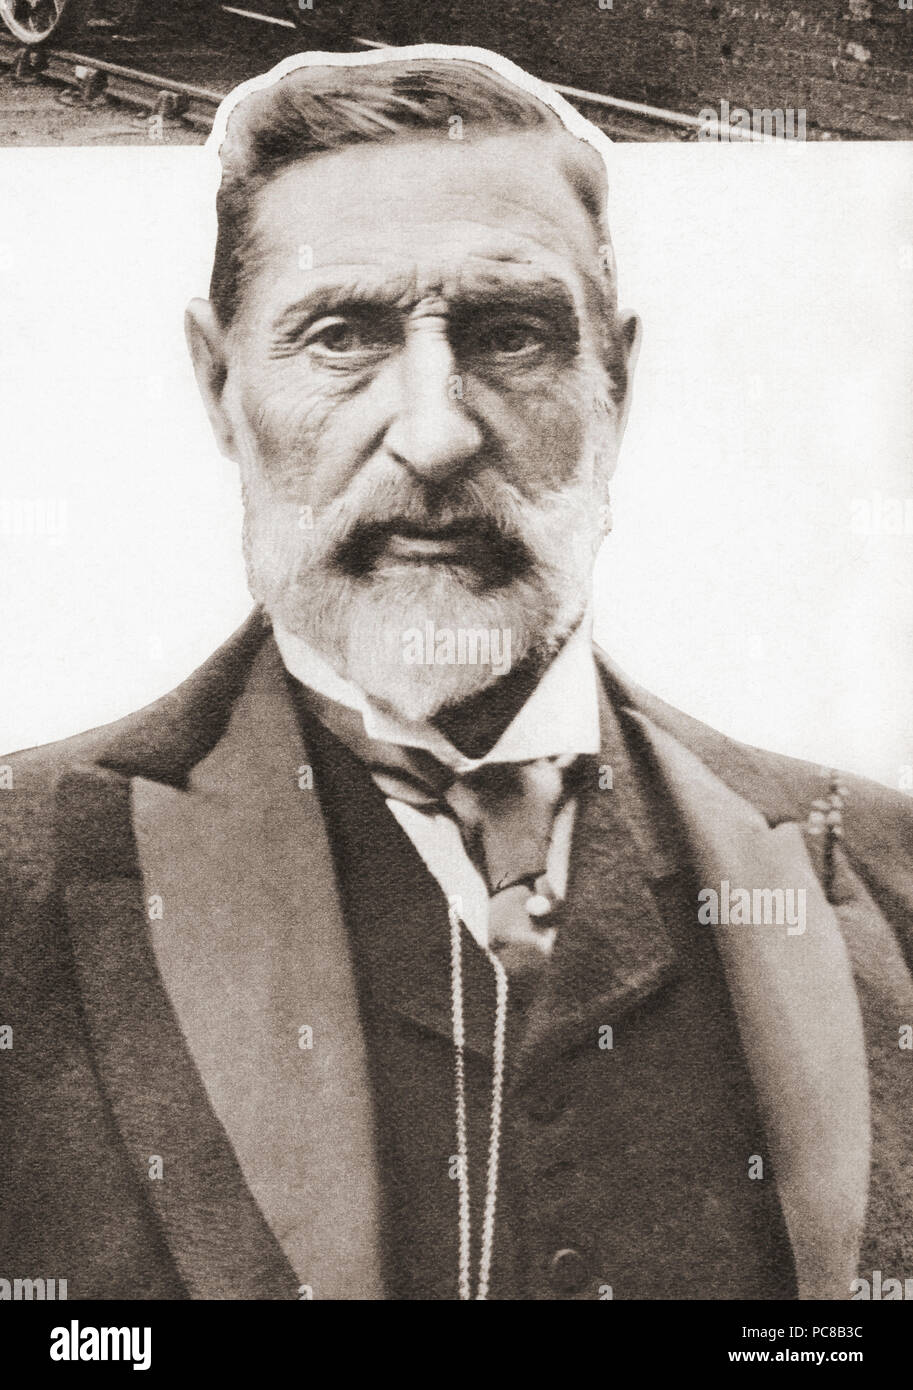 Sir Henry Rider Haggard, 1856 – 1925, aka H. Rider Haggard.  English writer of adventure novels.  From These Tremendous Years, published 1938. - Stock Image